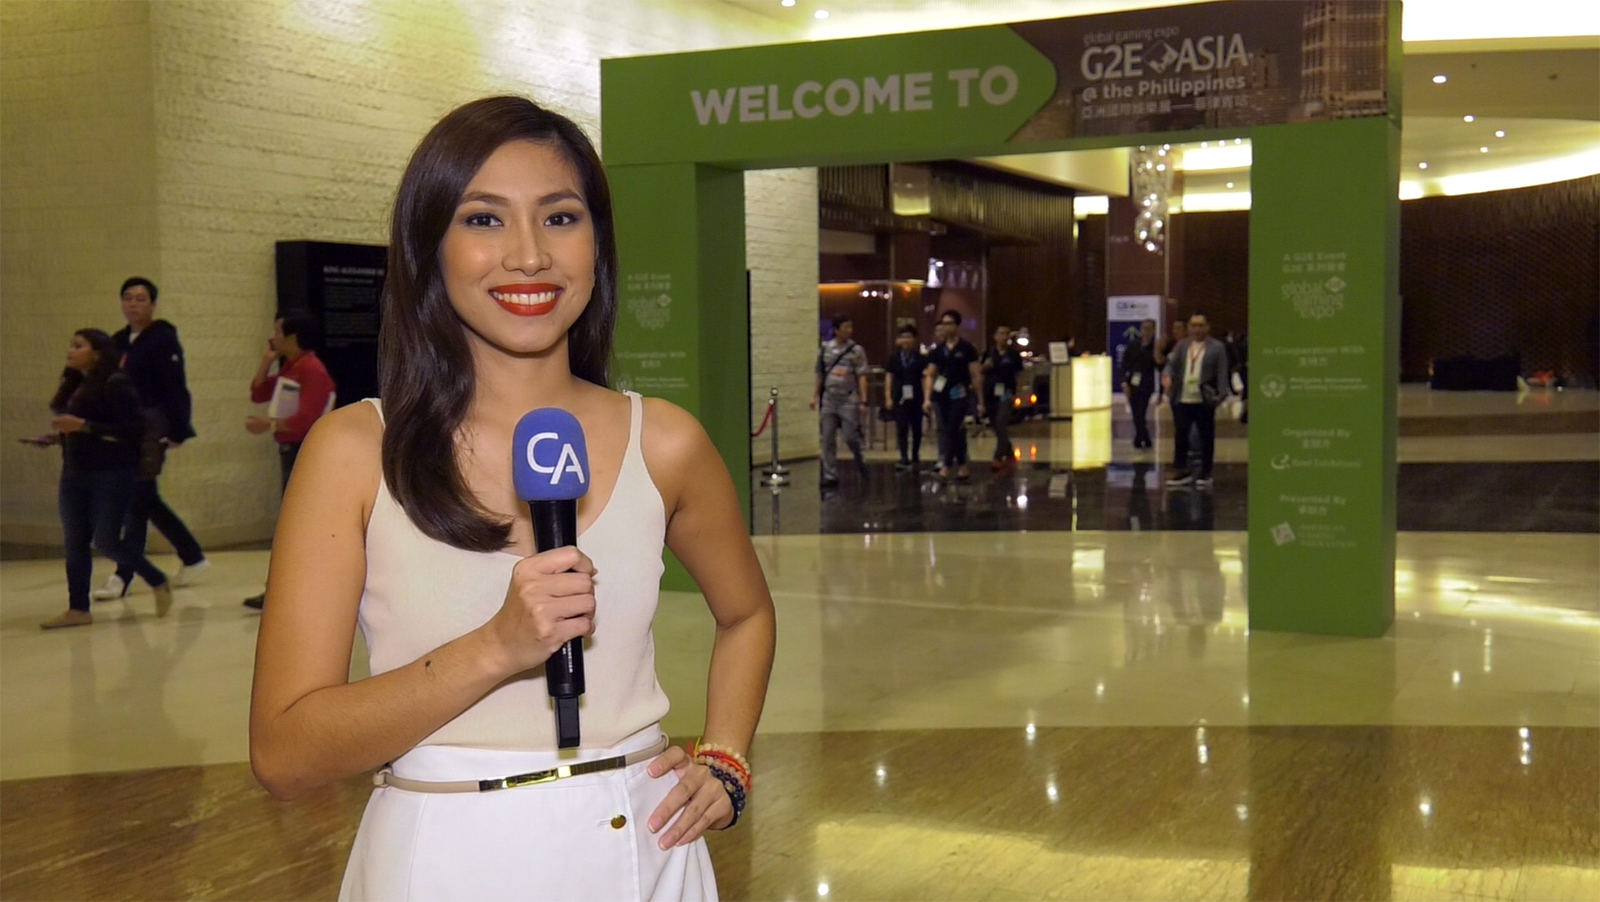 g2e-asia-the-philippines-day-2-it-and-tech-solutions-increasing-gaming-industry-shifting-to-digital-video-feat